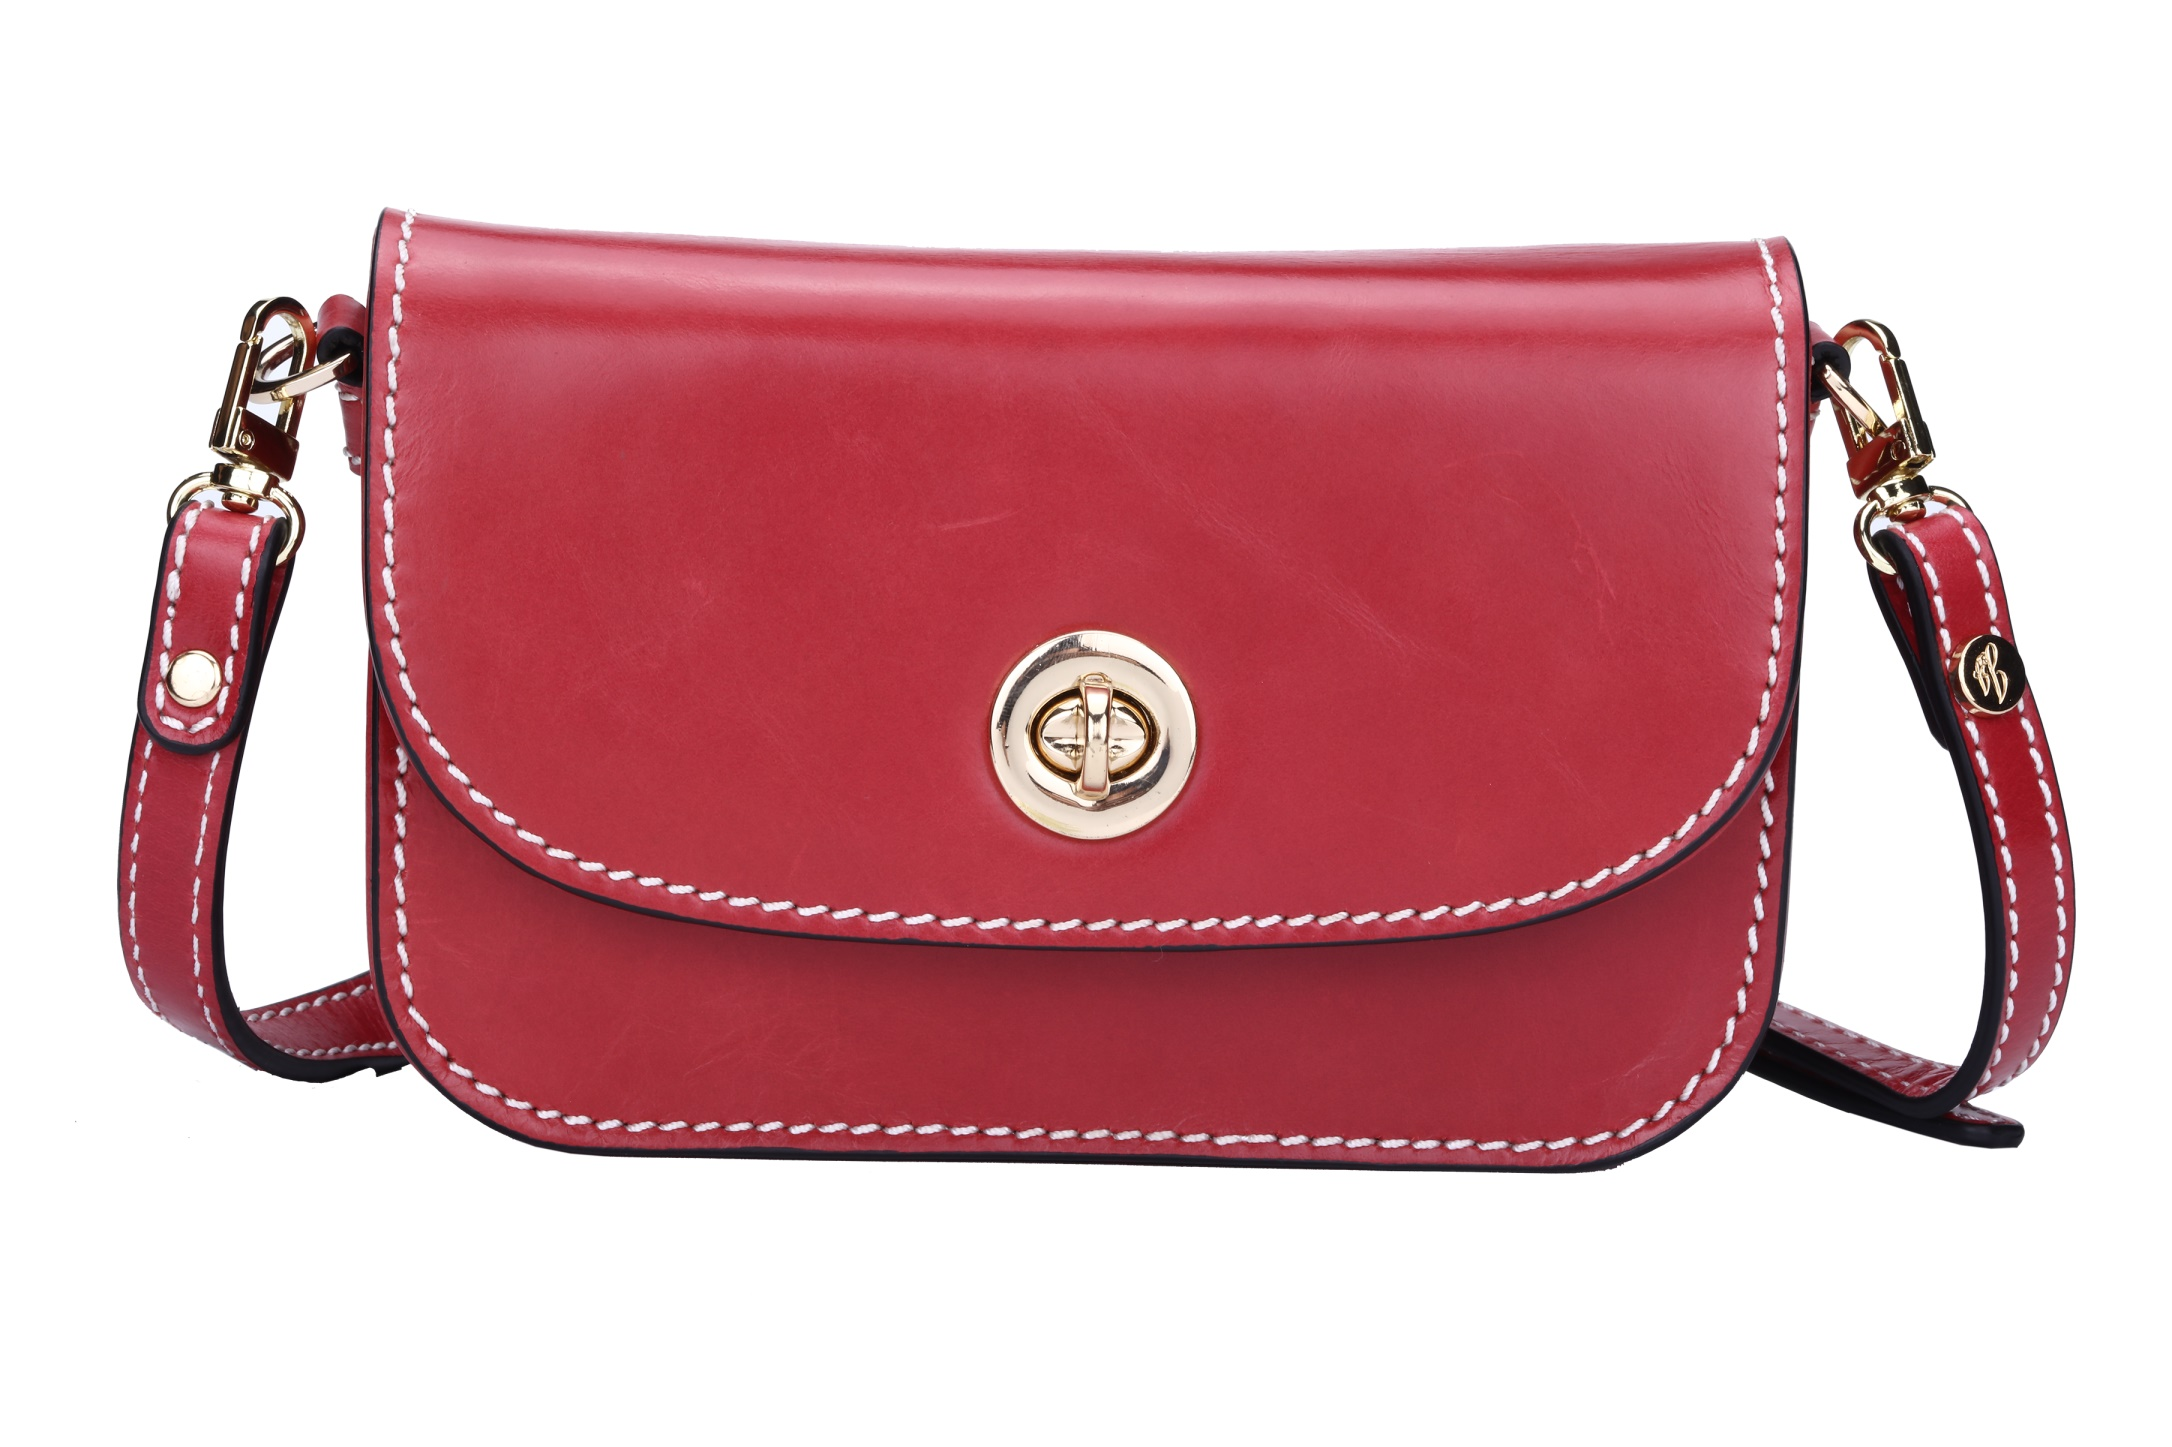 GF bags-Evening Clutch Bags small genuine leather with metal lock-1